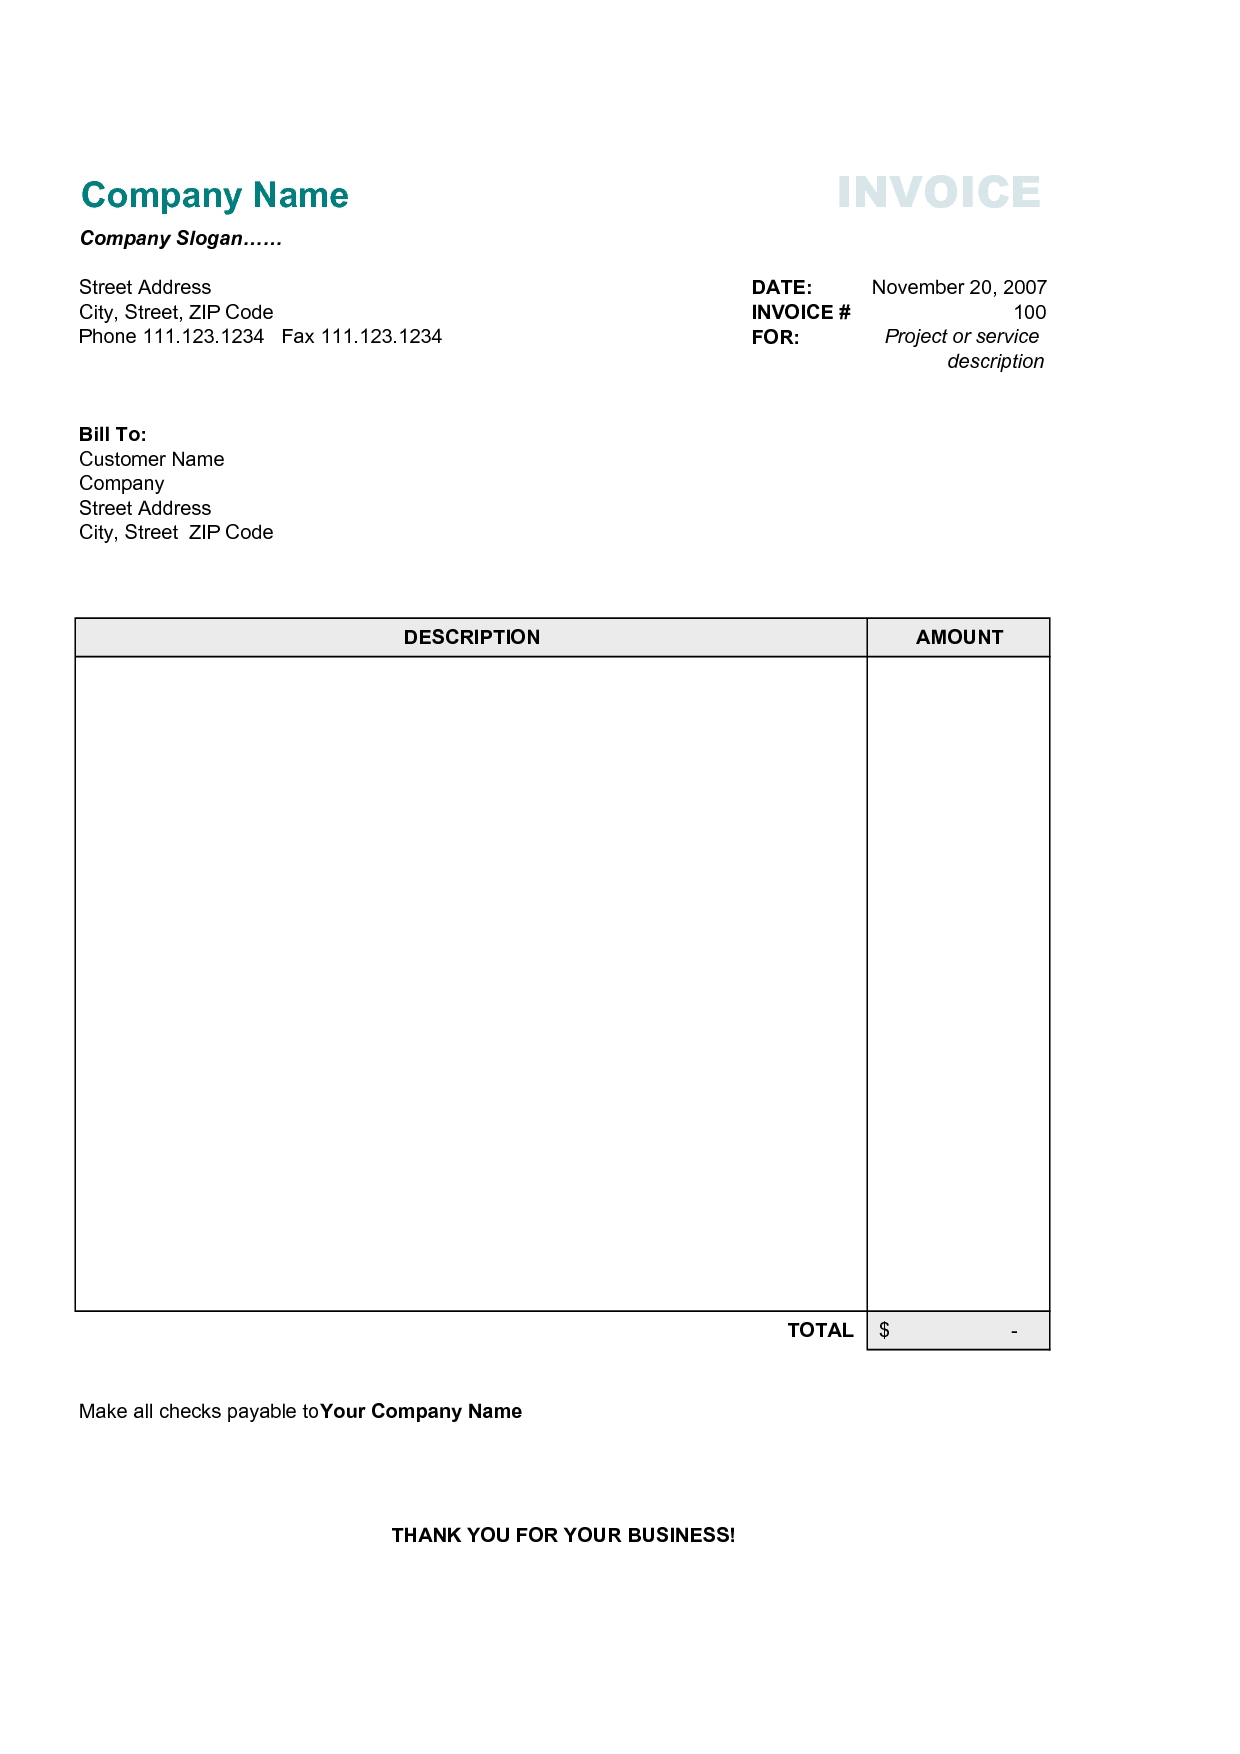 Sample Invoice Template ticket invitation template free – Sample Invoice Template